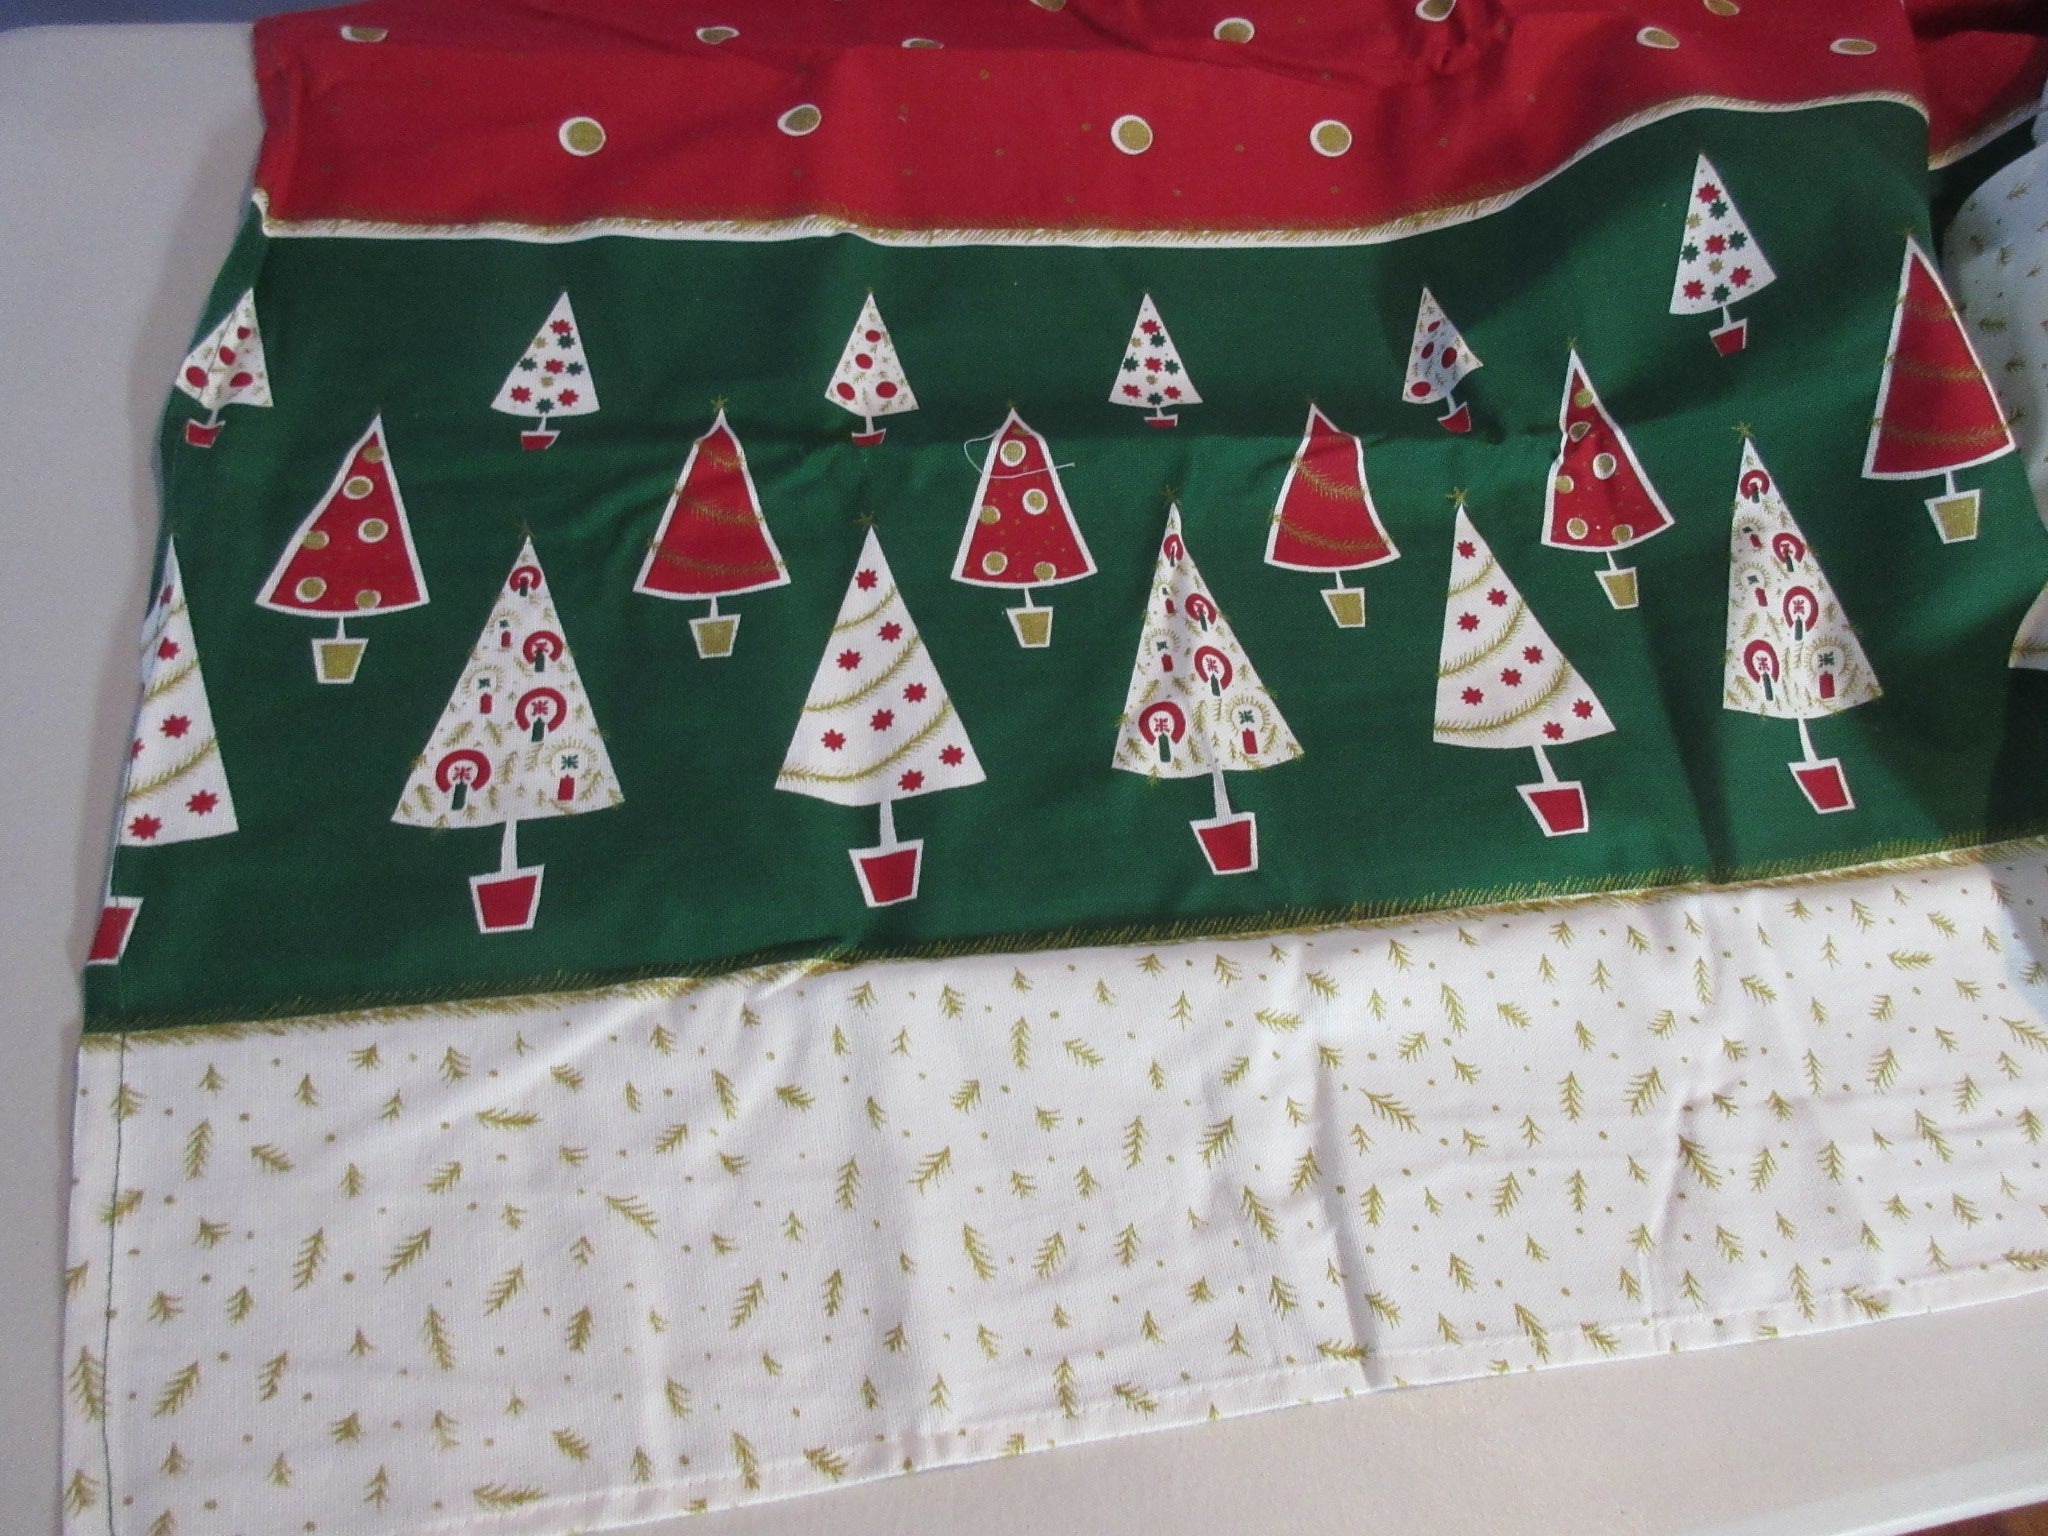 RECTANGLE 60x84 Christmas Trees NOS Retro Printed Tablecloth (83 X 59 actual)